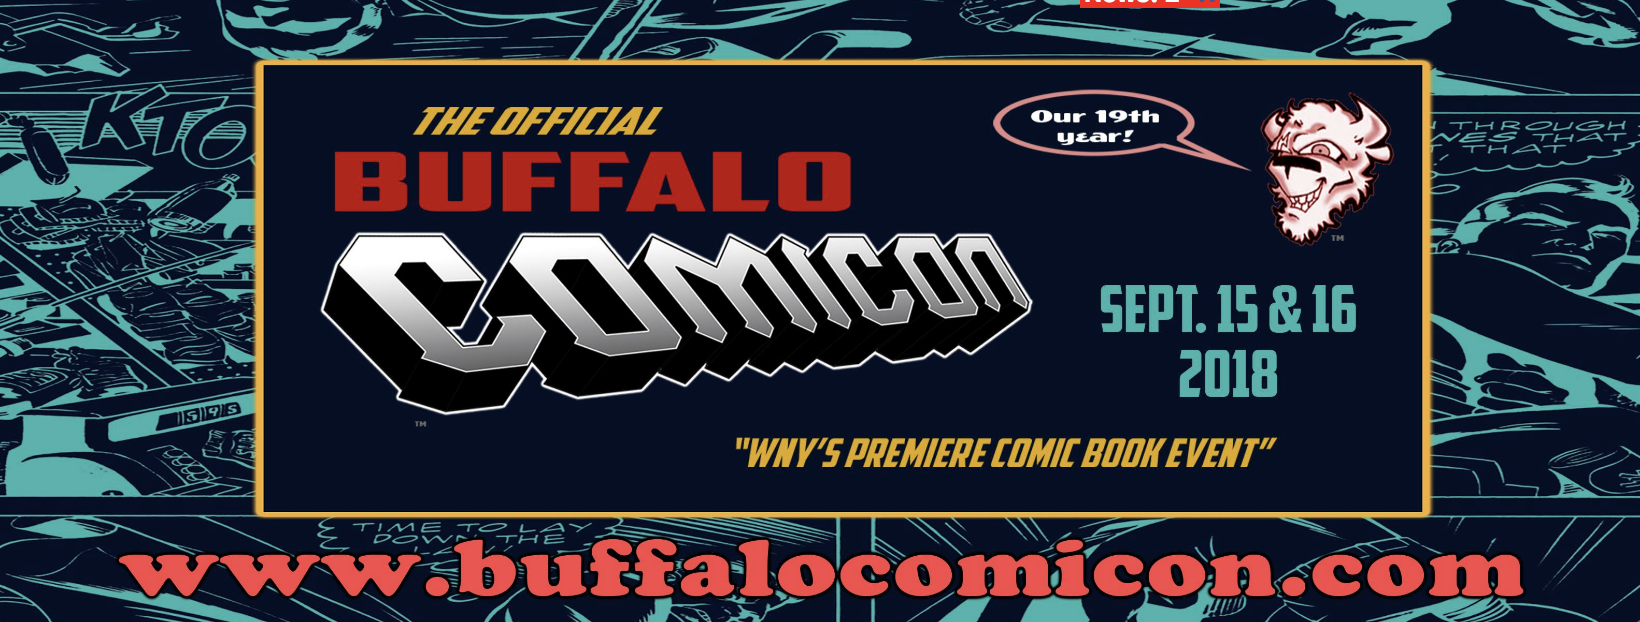 Upcoming Event - Buffalo Comicon, Buffalo NY